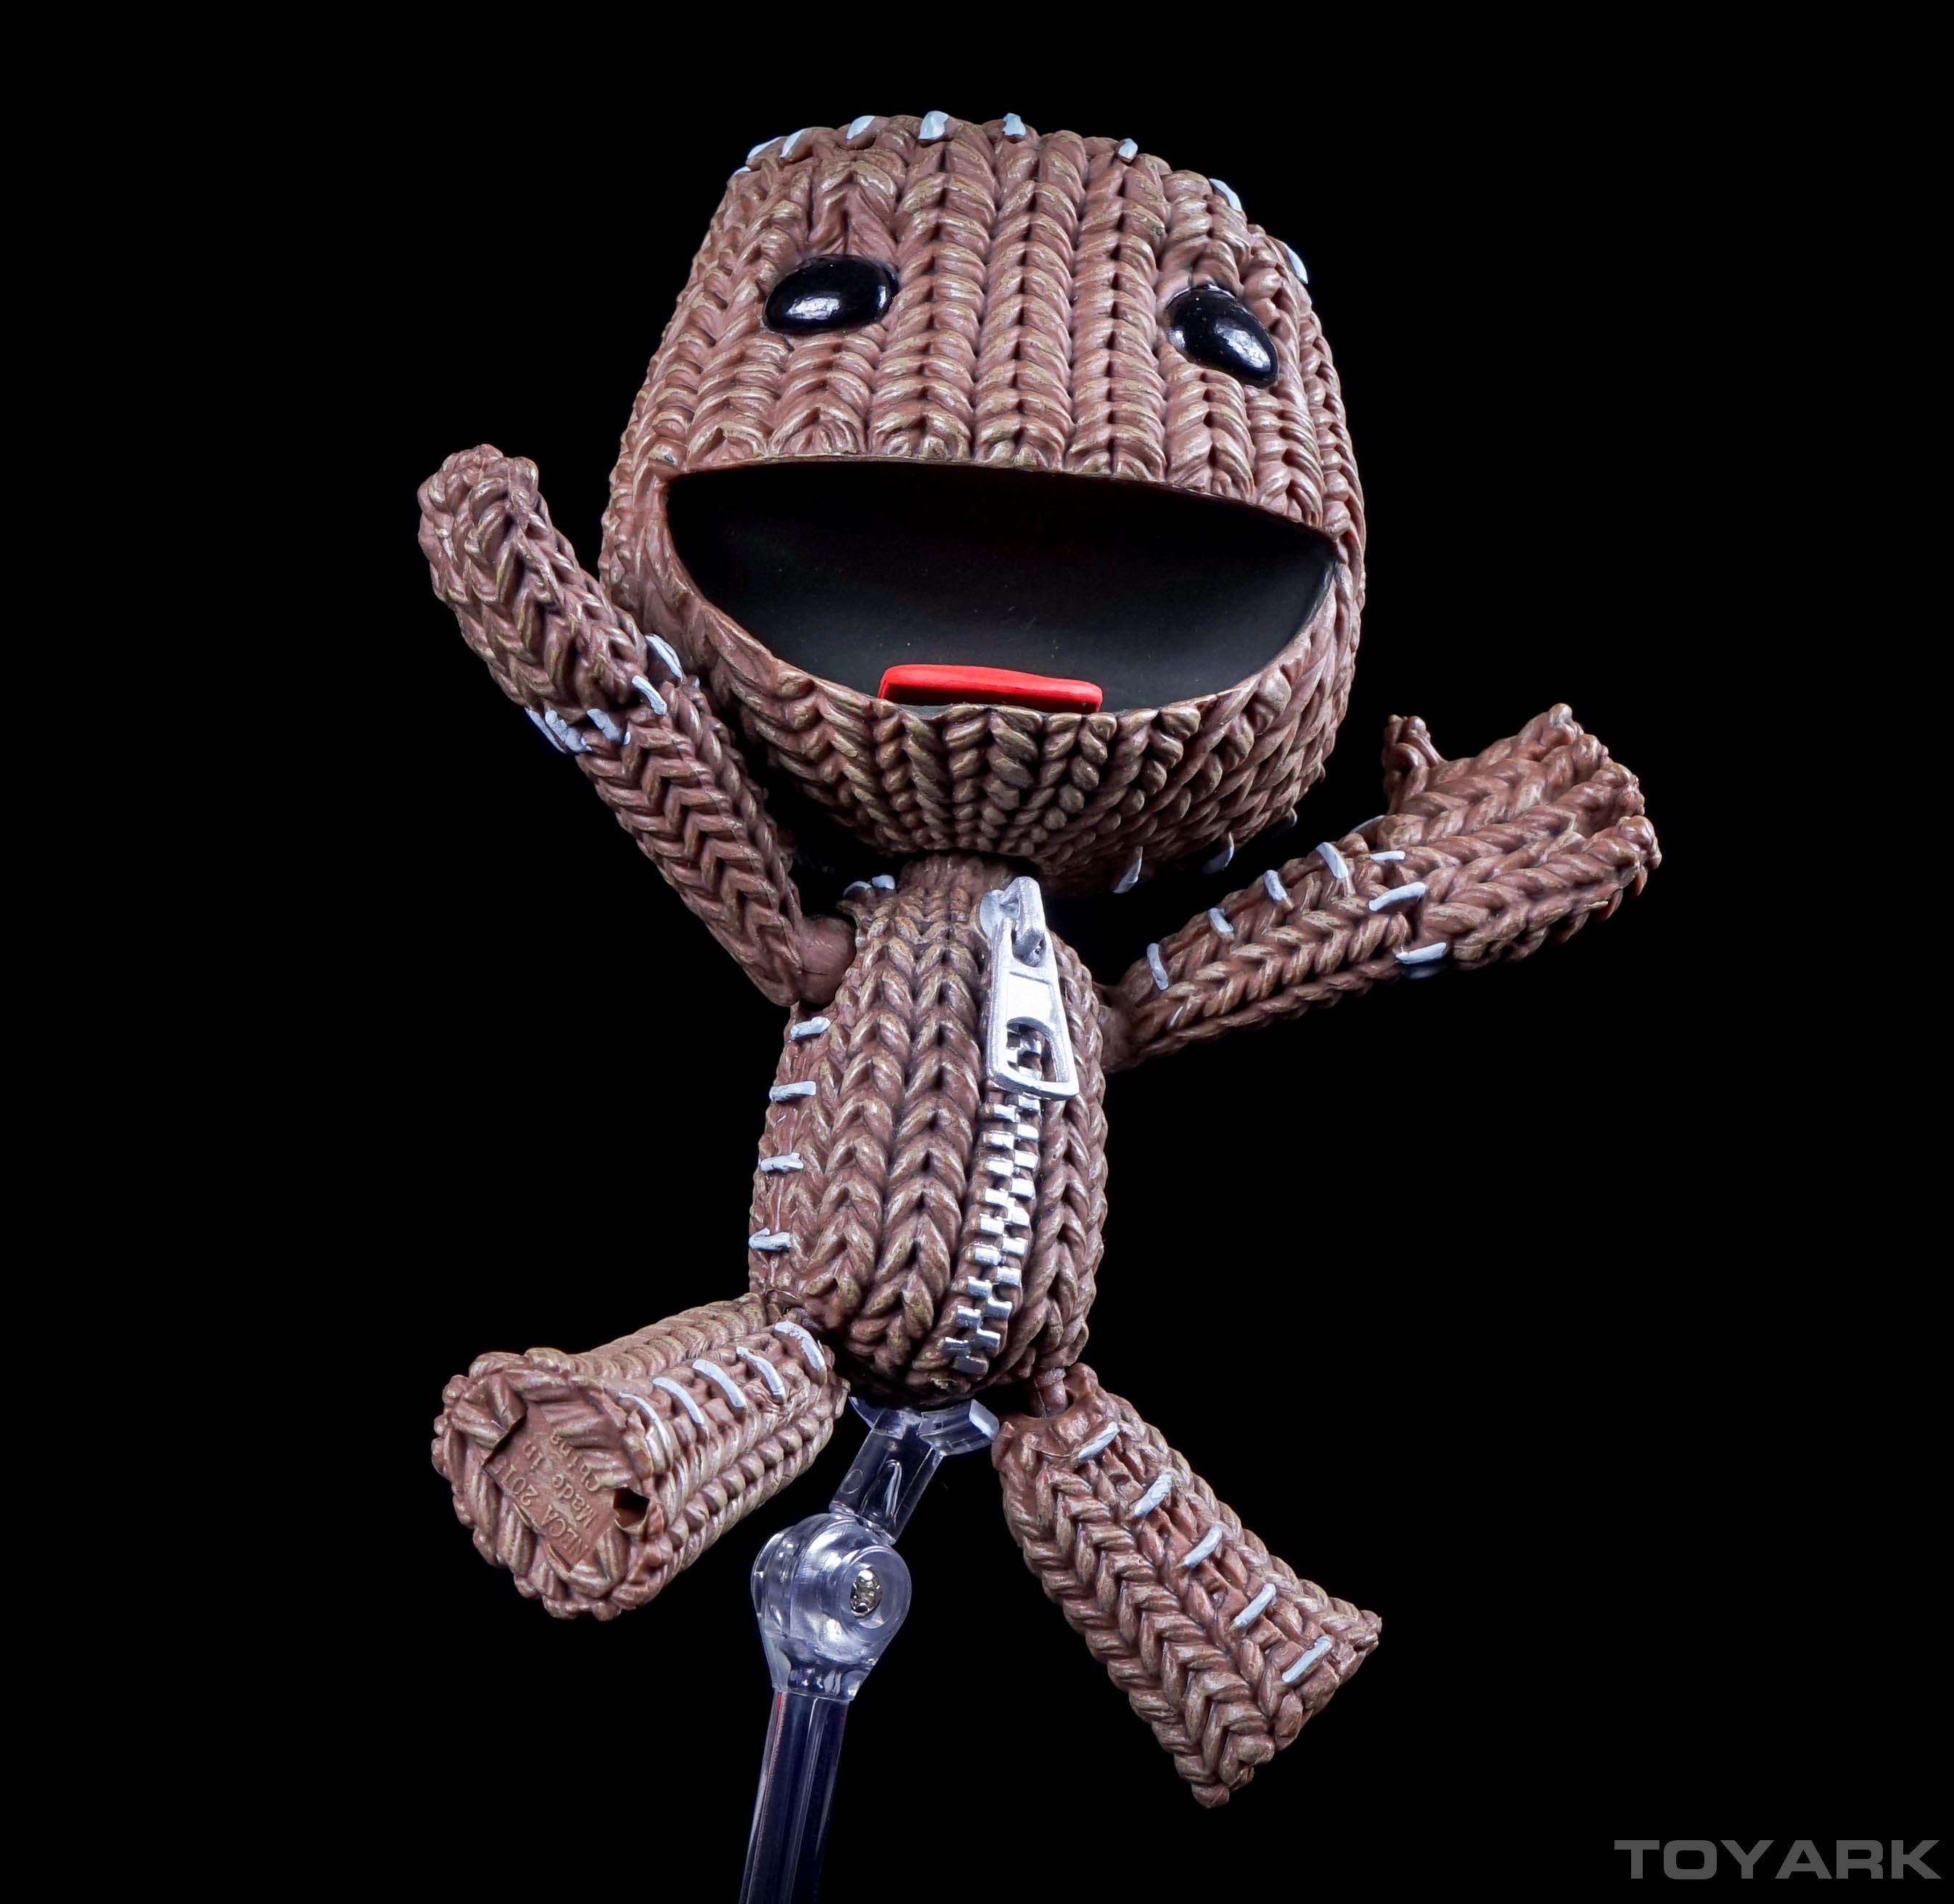 http://news.toyark.com/wp-content/uploads/sites/4/2015/11/LittleBigPlanet-Series-1-NECA-029.jpg